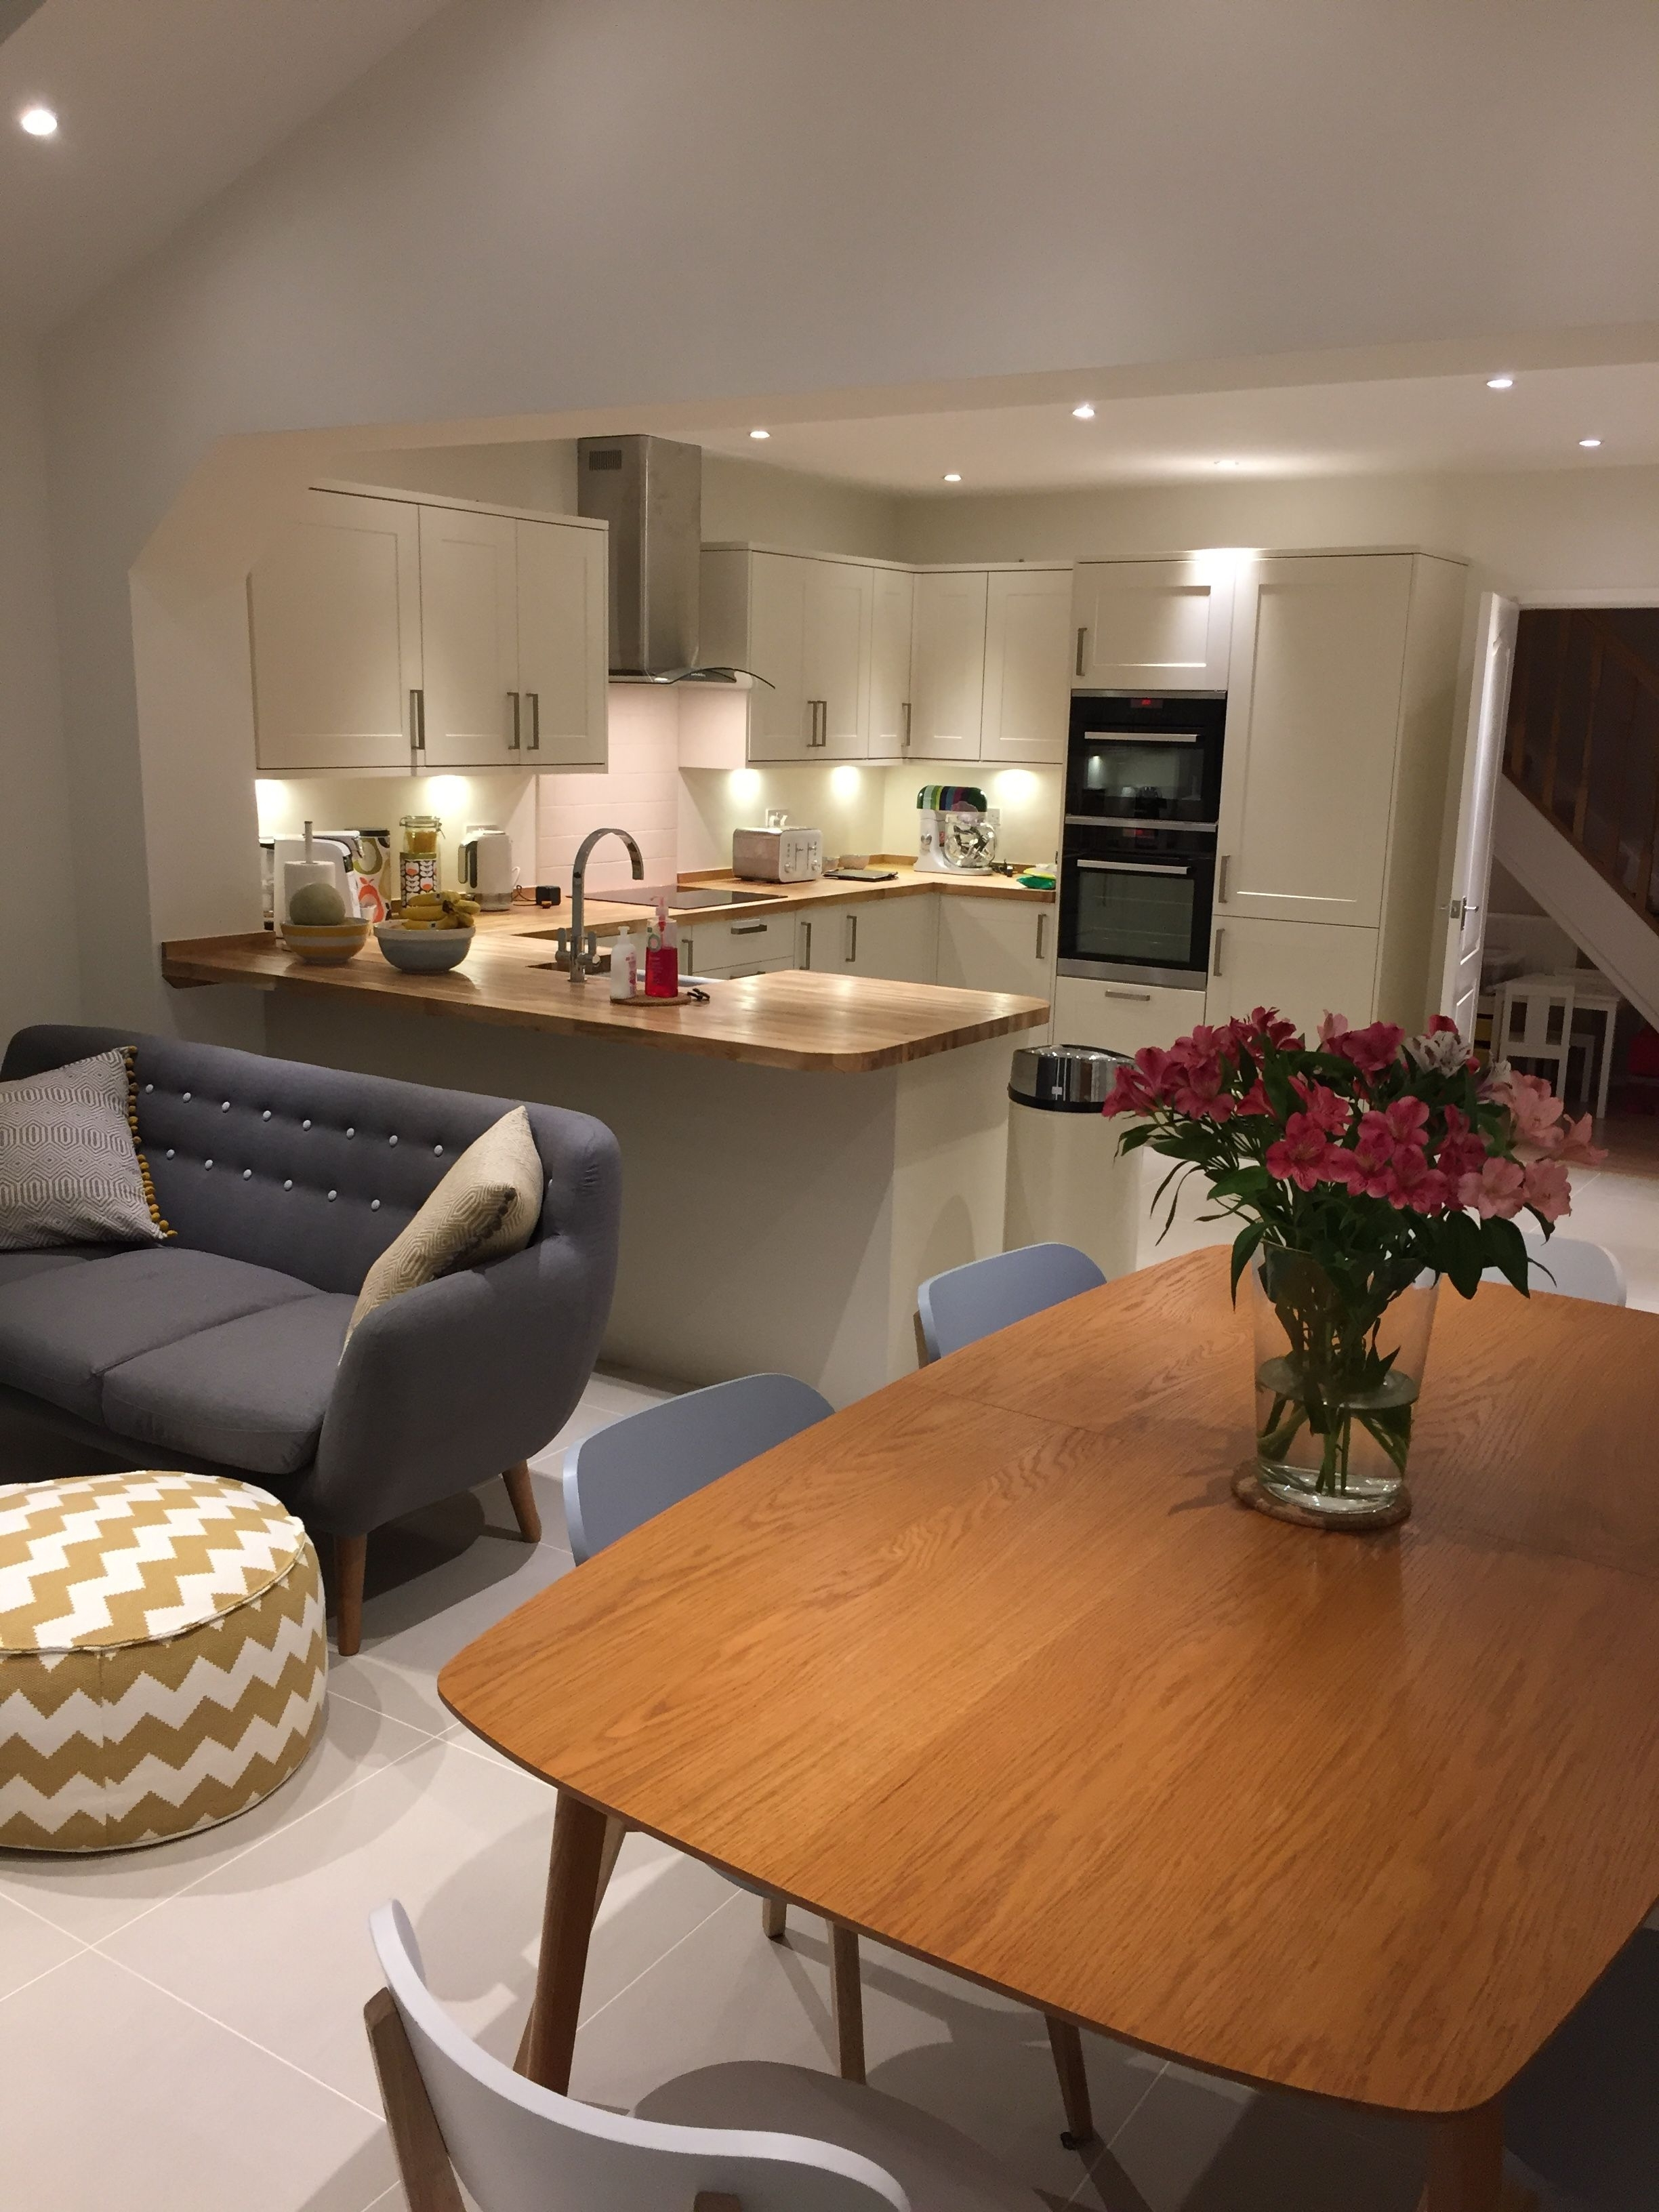 Widely Used My Open Plan Kitchen, Dining And Family Area (View 9 of 20)